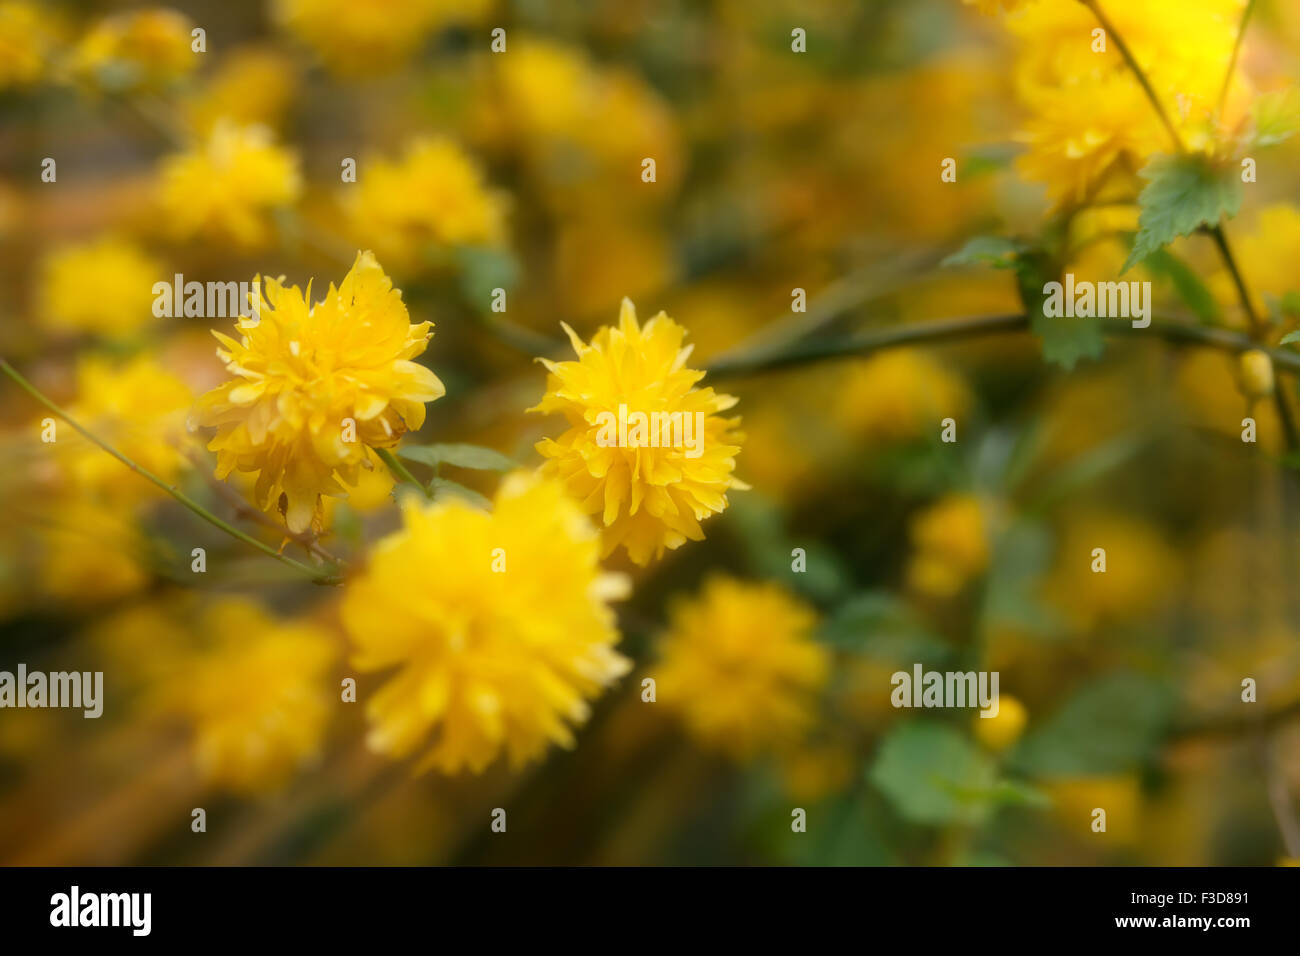 Beautiful yellow flowers blossoming in spring time under sunshine beautiful yellow flowers blossoming in spring time under sunshine natural background ireland mightylinksfo Images